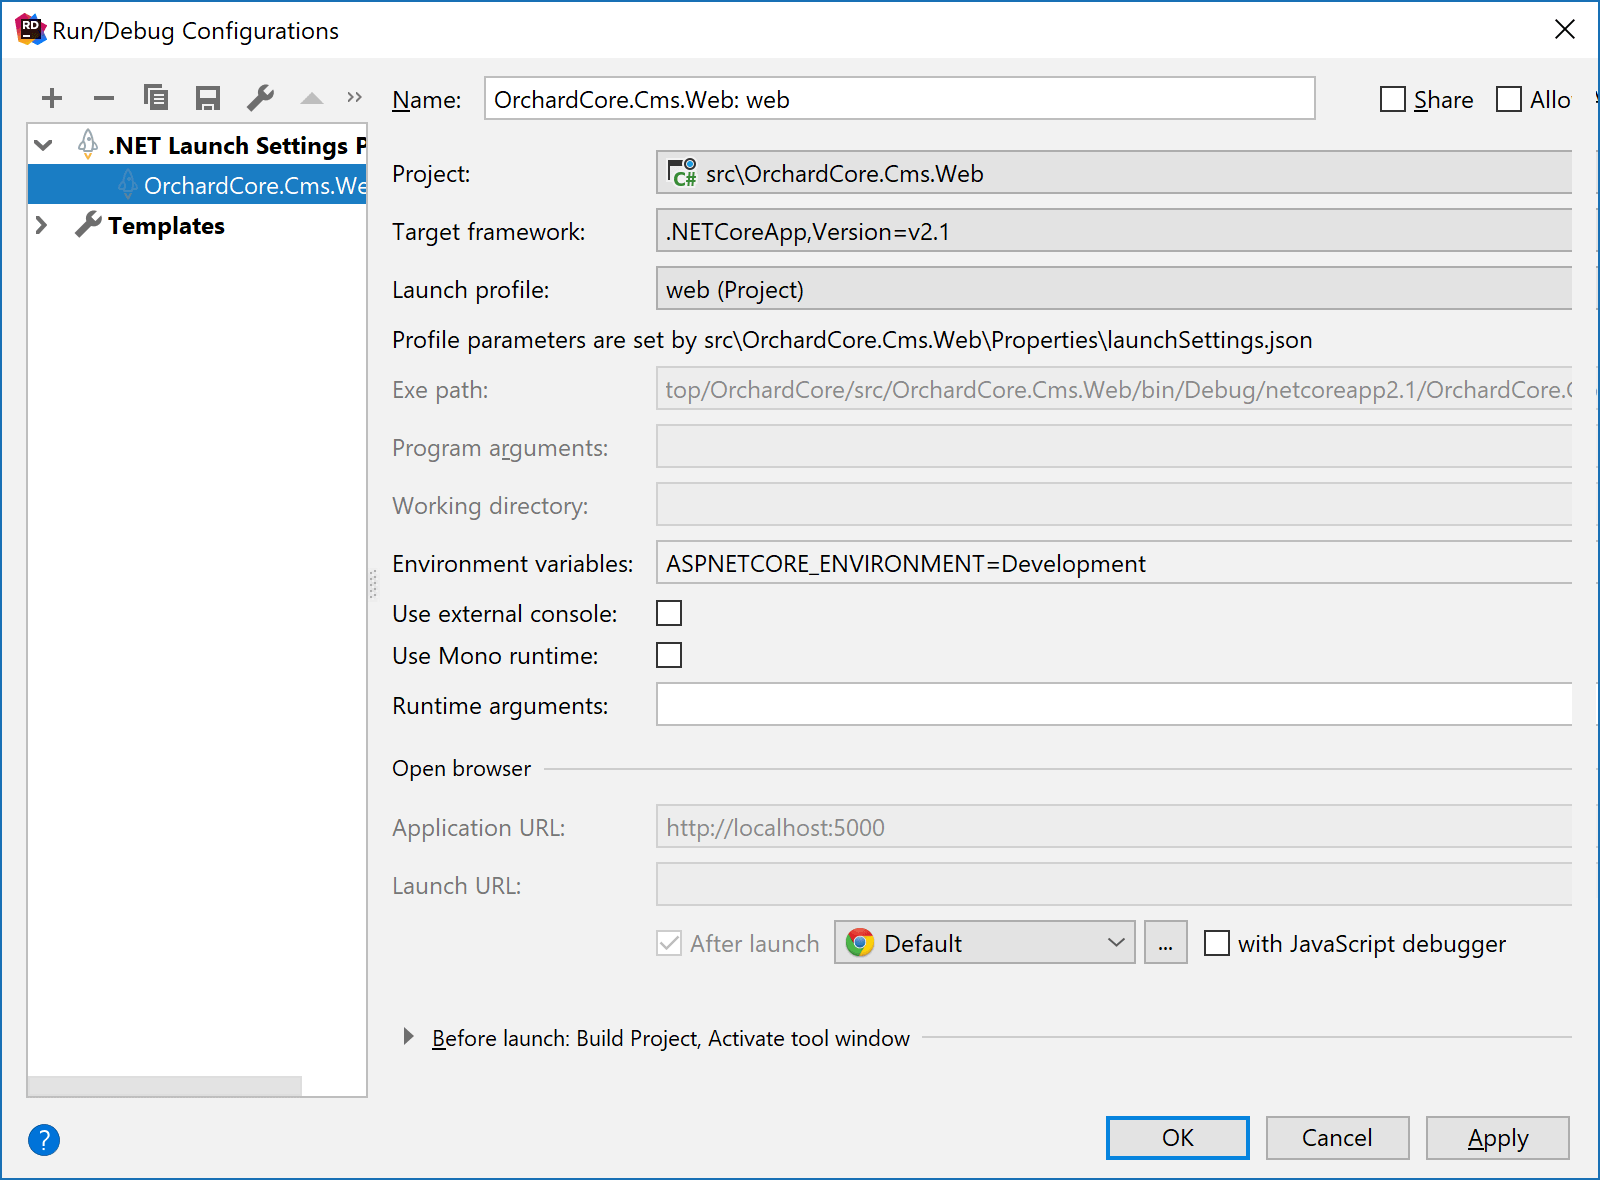 Editing a run configuration generated from launchSettings.json